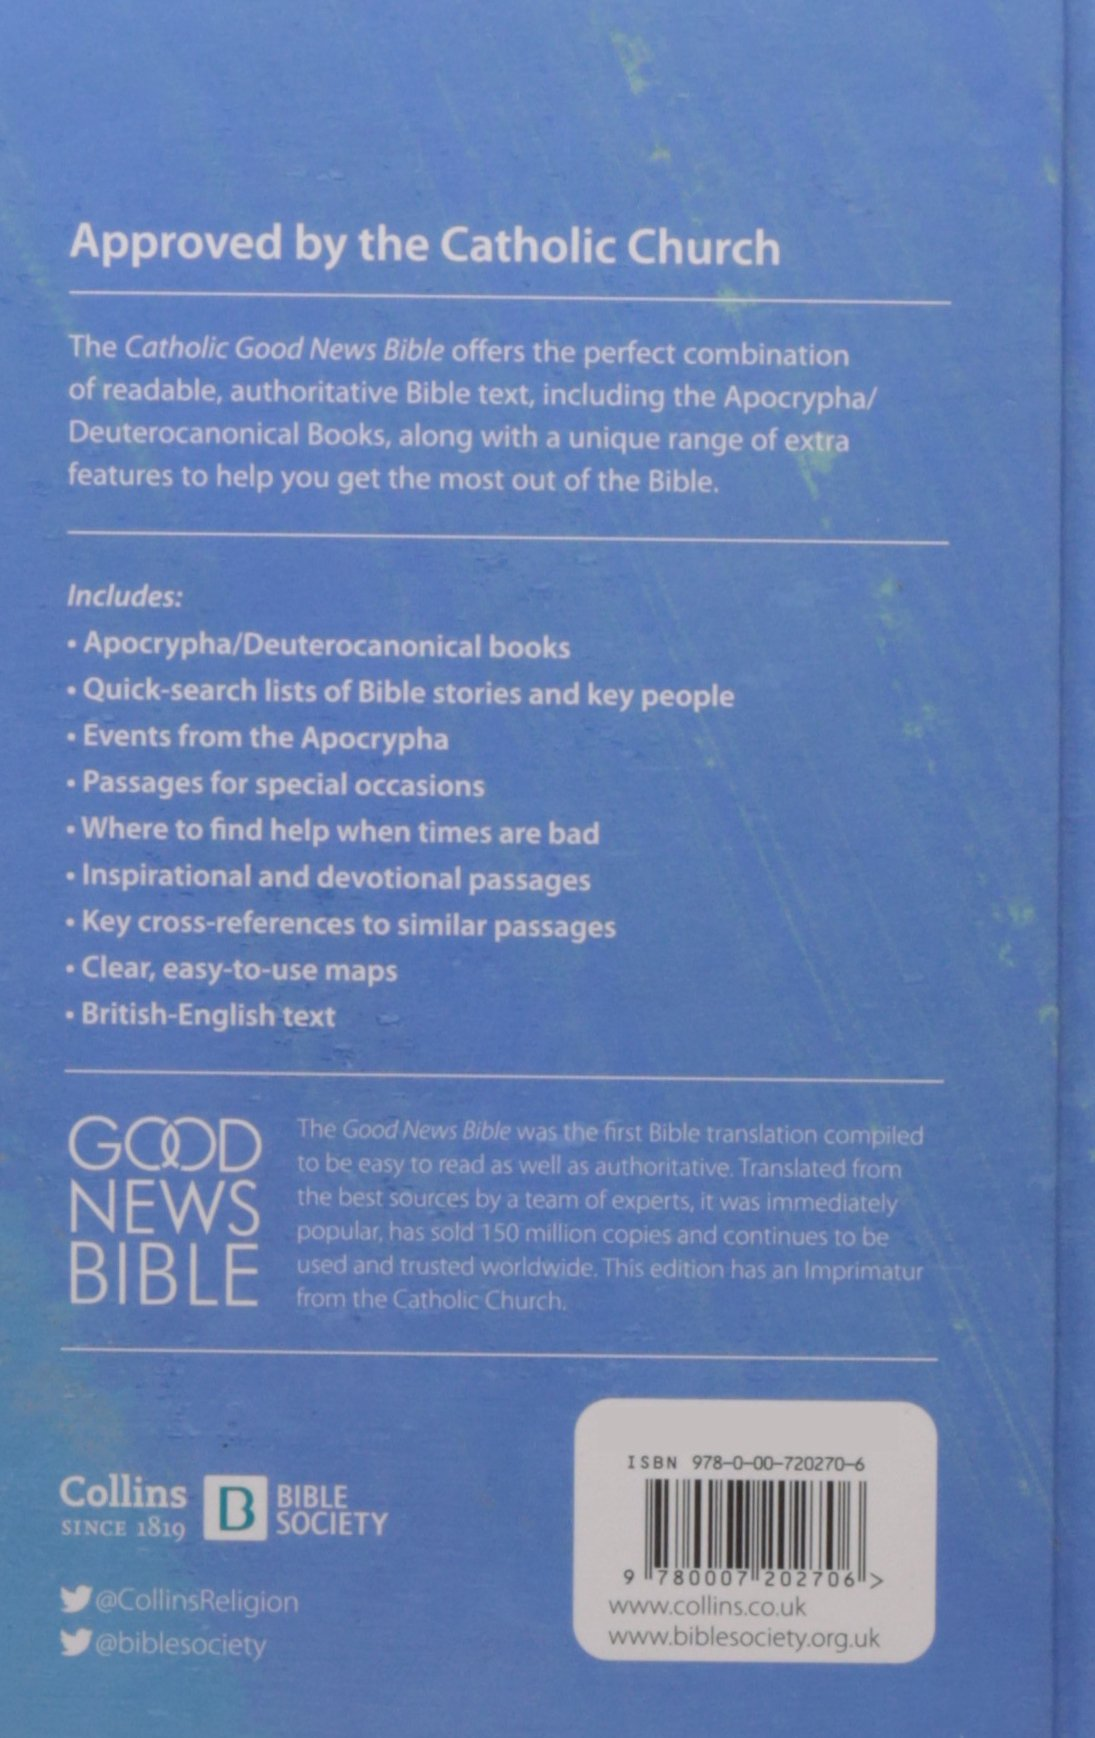 catholic good news bible gnb amazon co uk unknown catholic good news bible gnb amazon co uk unknown 9780007202706 books